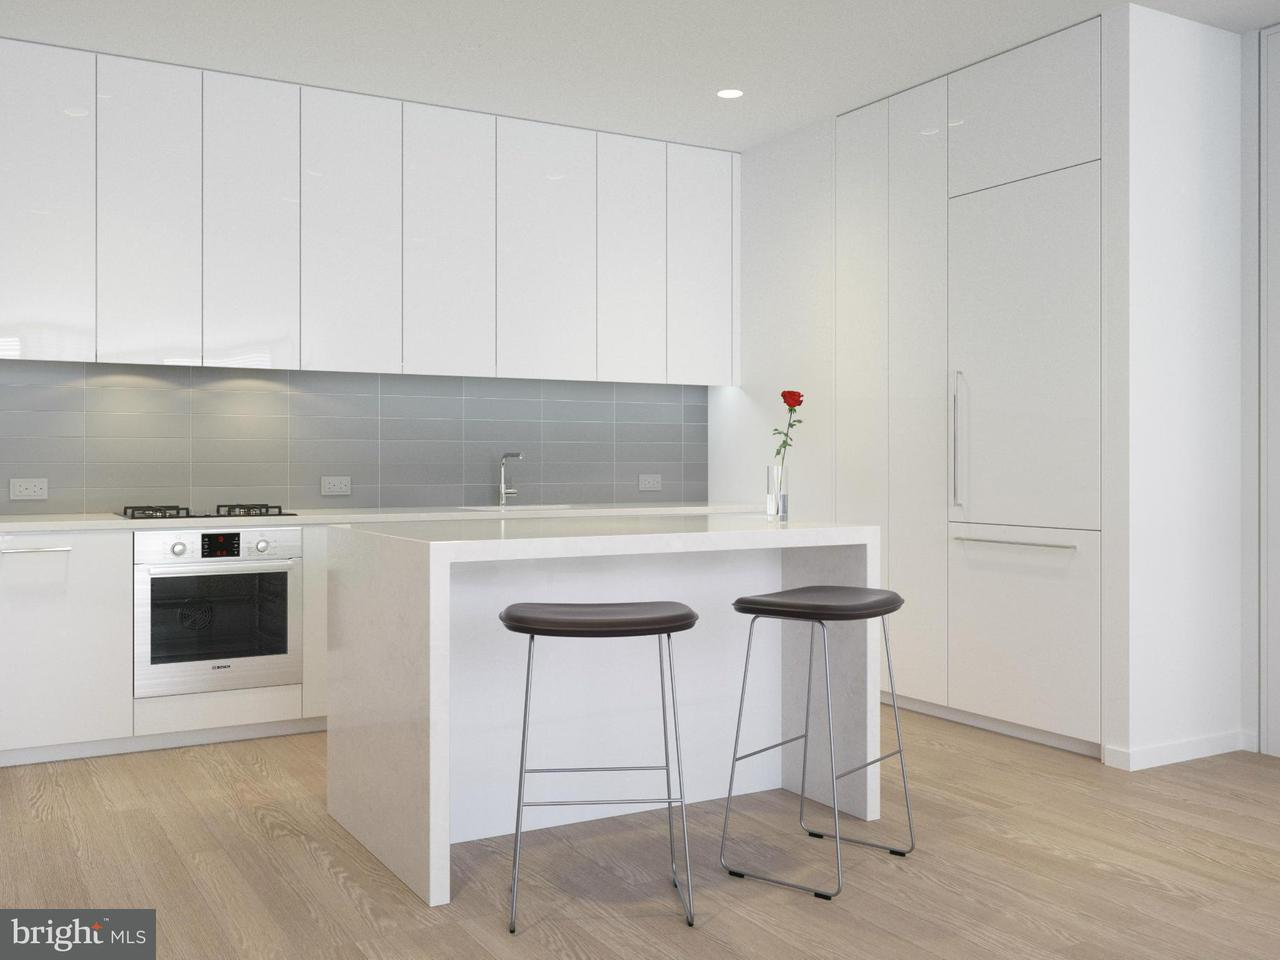 Additional photo for property listing at 1111 24TH ST NW #103 1111 24TH ST NW #103 Washington, Округ Колумбия 20037 Соединенные Штаты